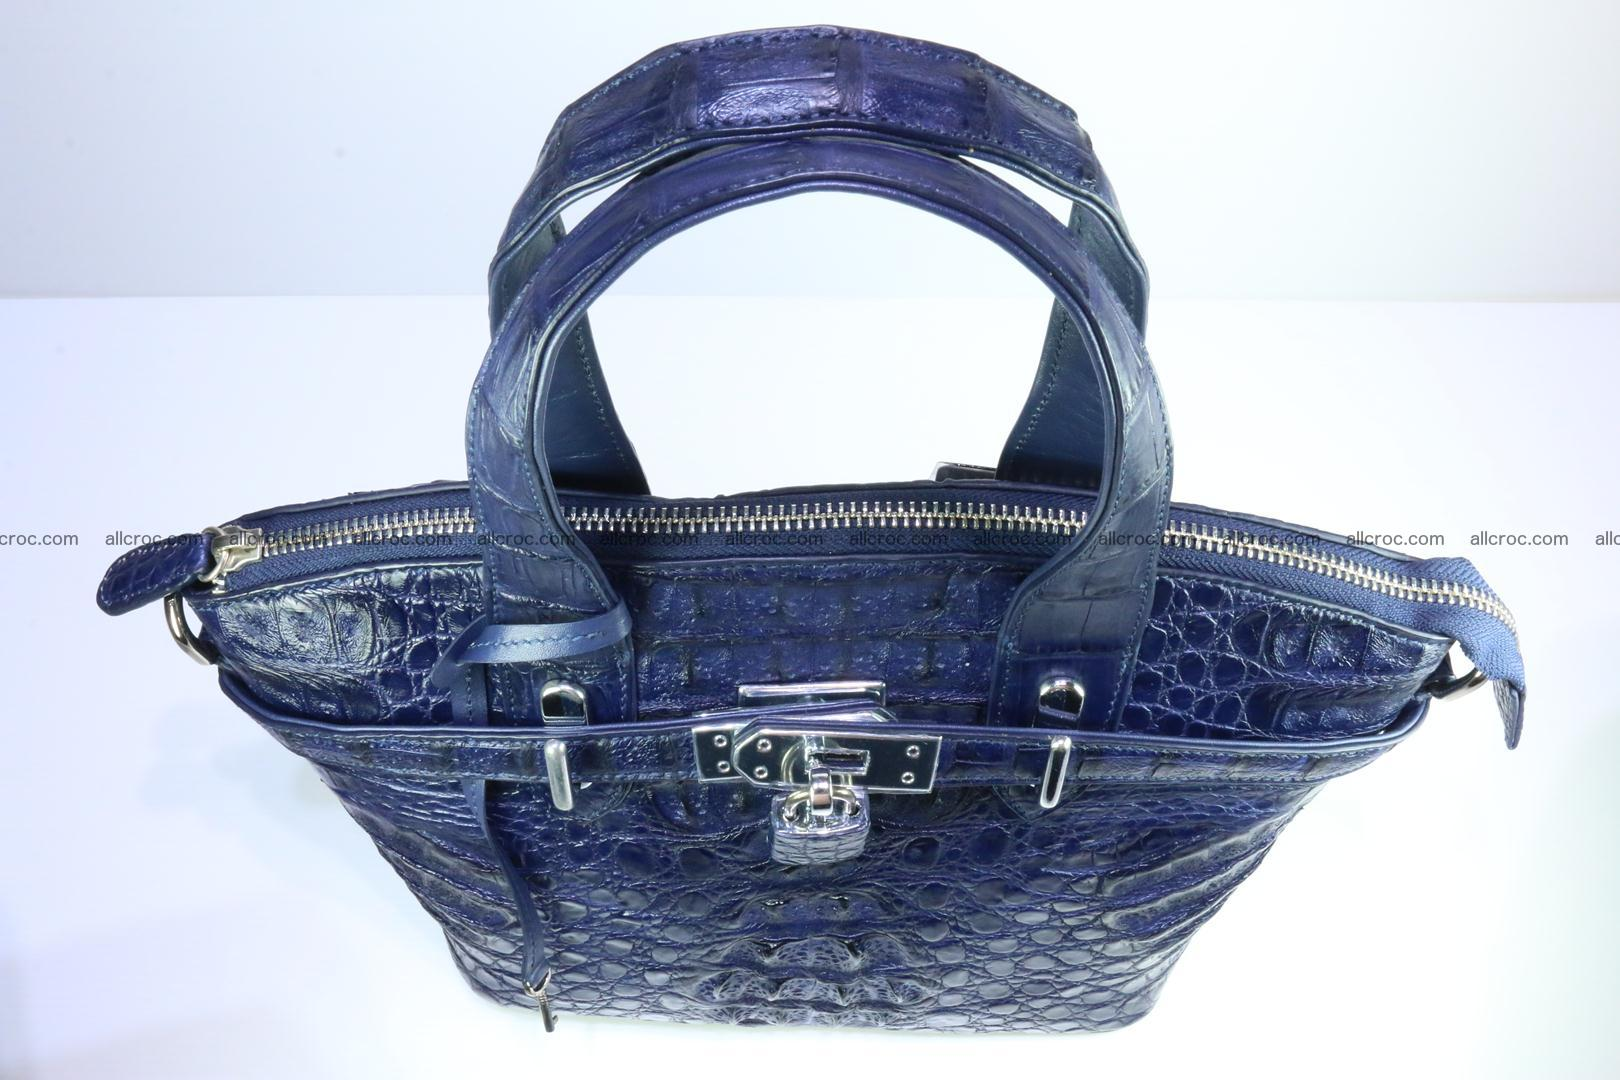 Genuine crocodile handbag for ladies 048 Foto 6